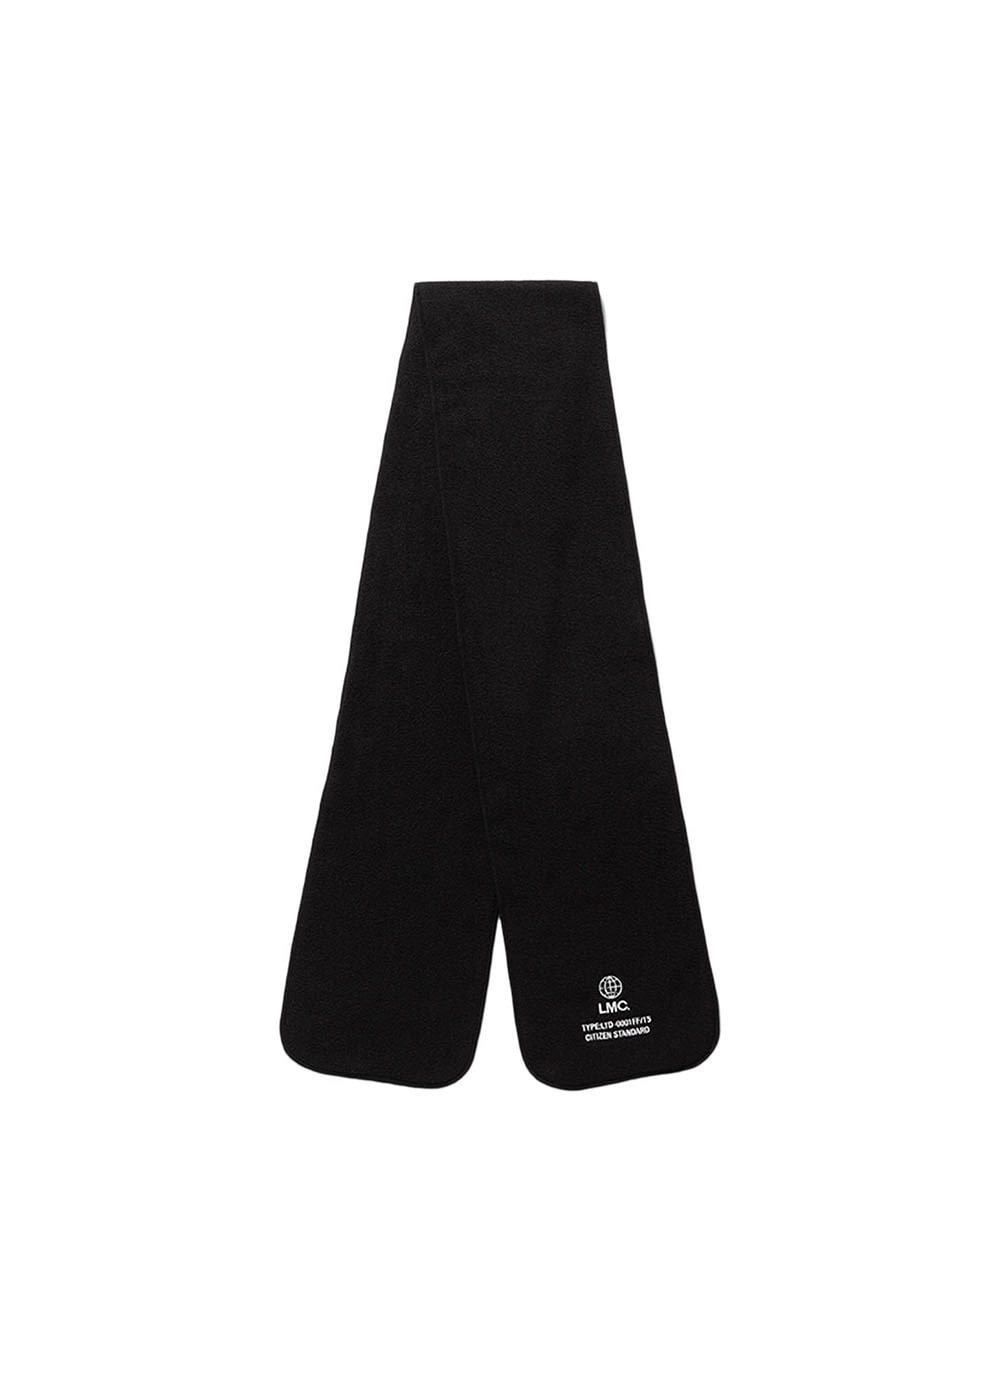 LMC GLOBE FLEECE MUFFLER black